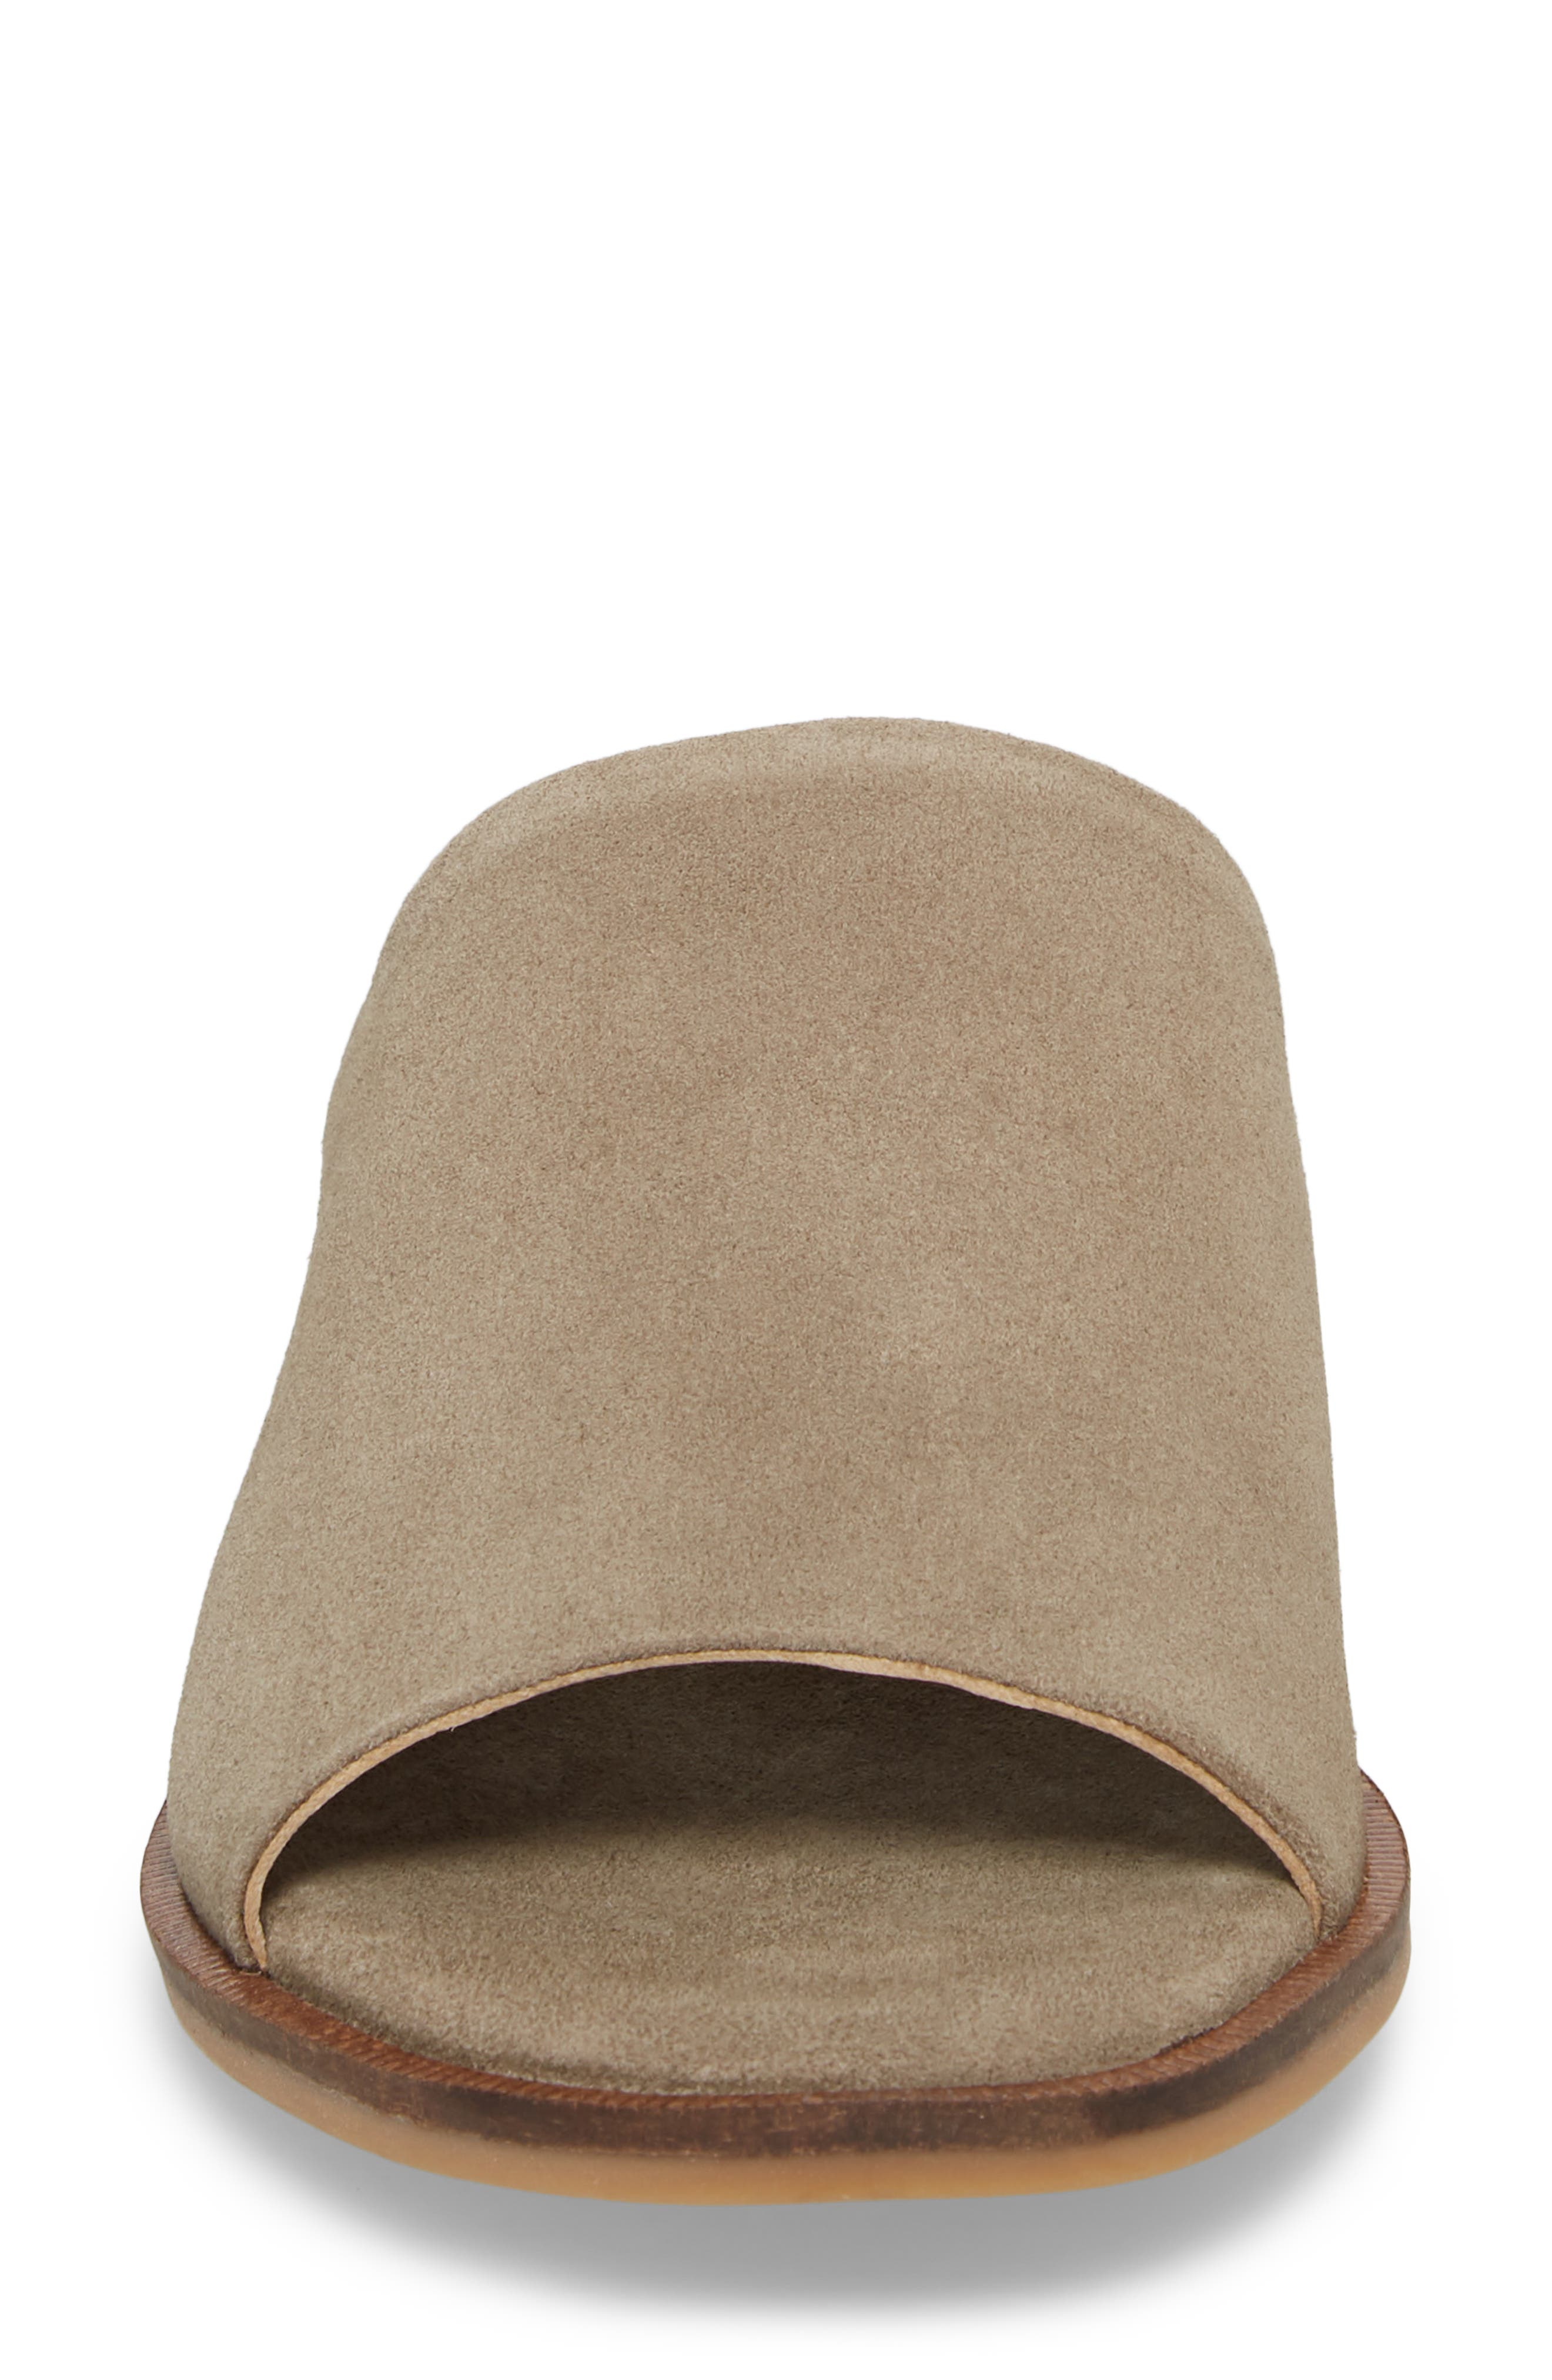 Relaxing Wedge Slide Sandal,                             Alternate thumbnail 4, color,                             Taupe Leather